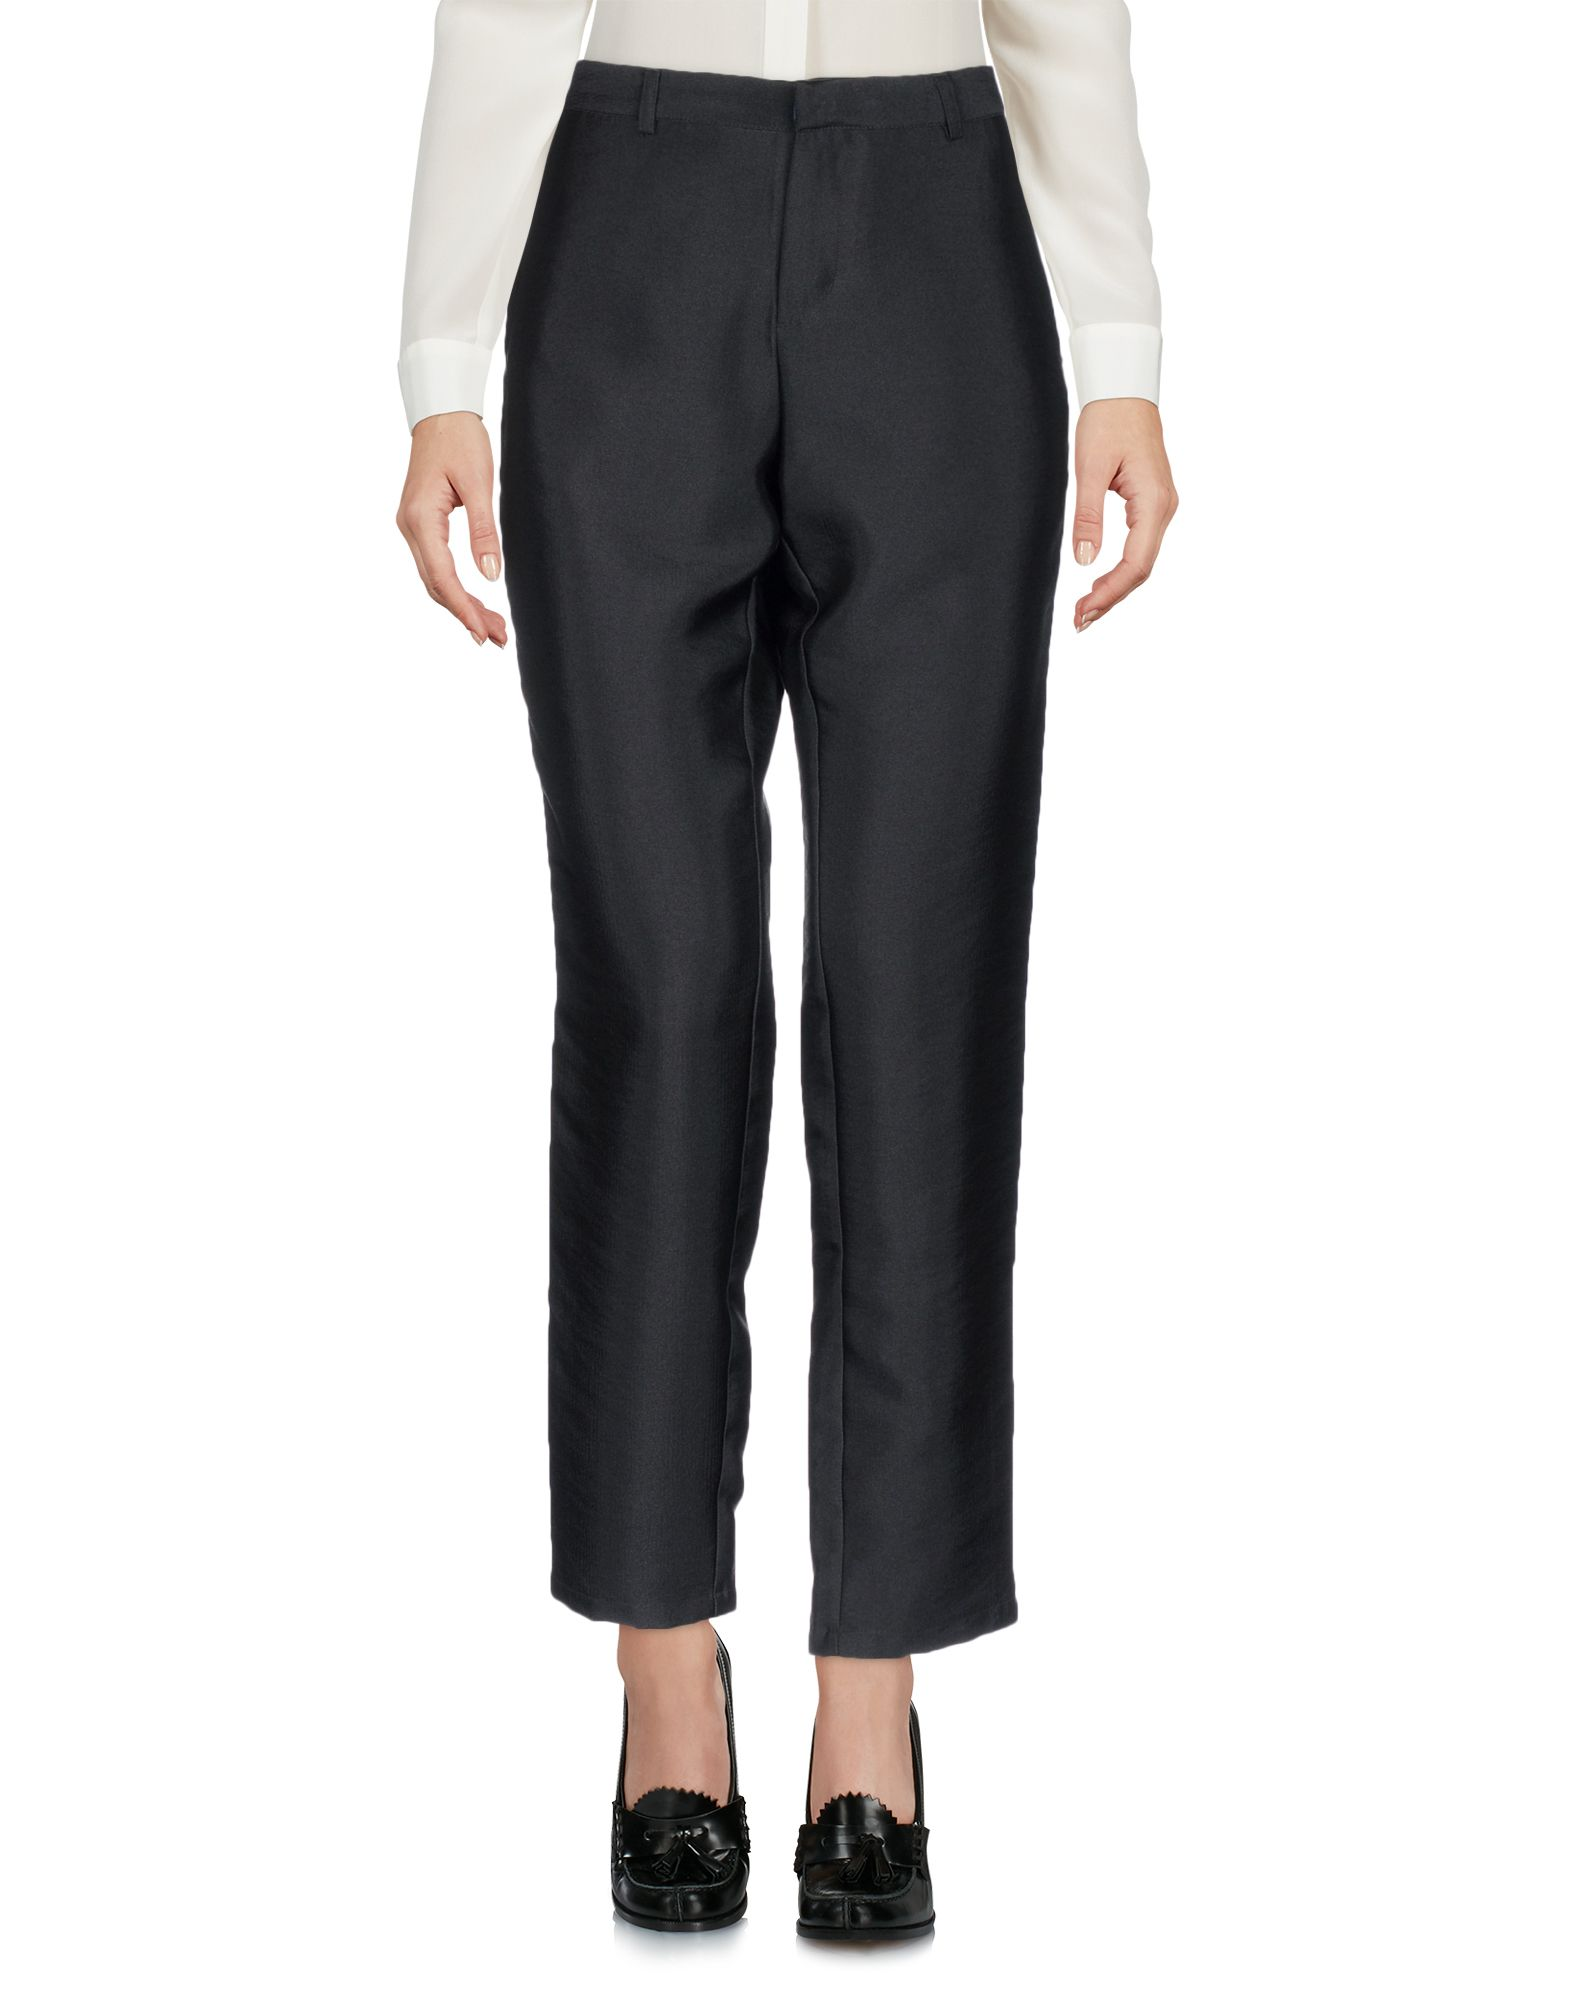 MAISON SCOTCH Casual Pants in Black